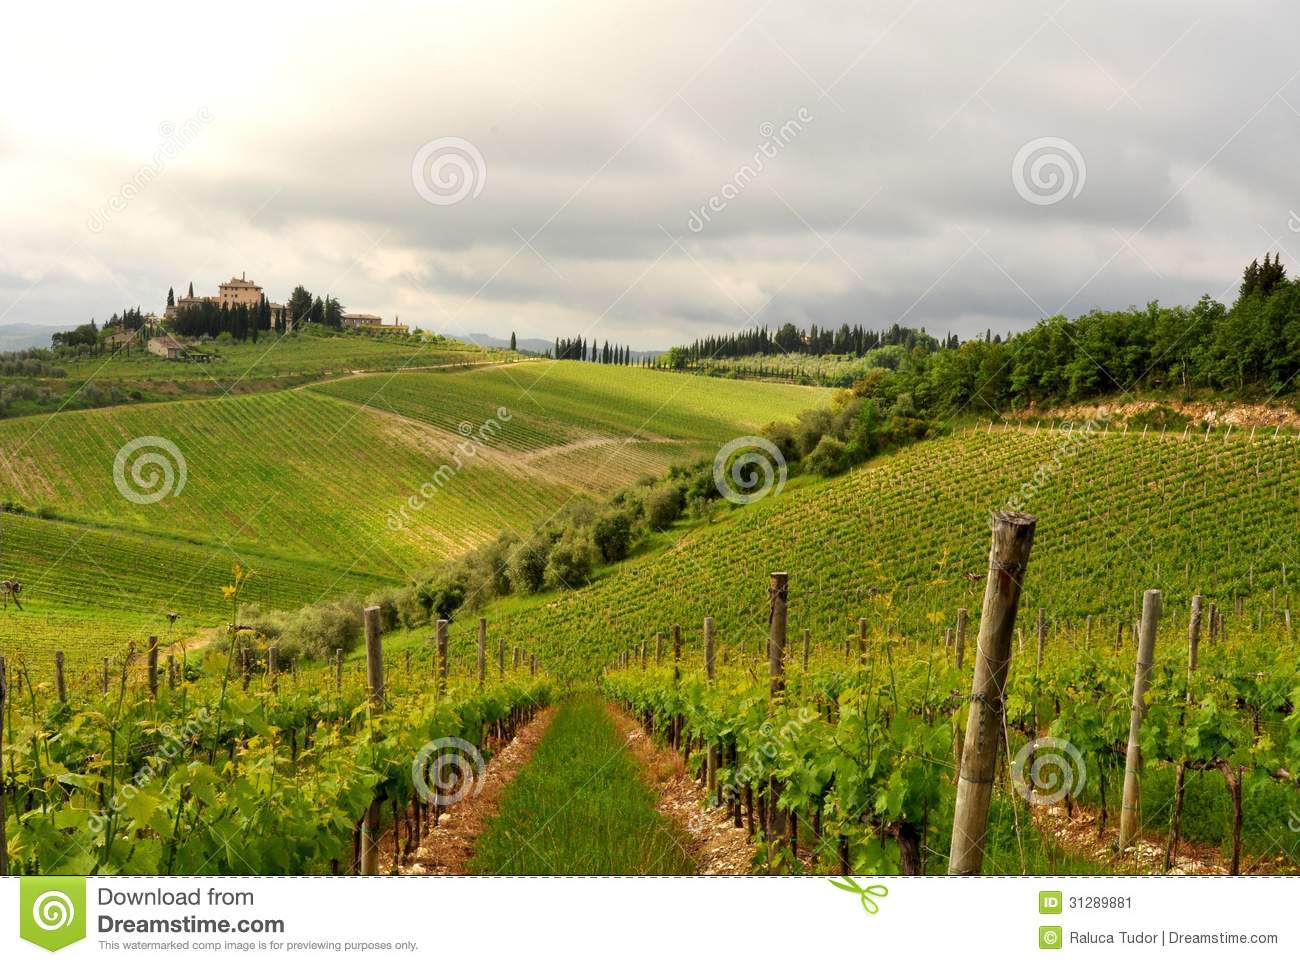 Olive trees and vineyards in tuscany italy stock image for Green italy